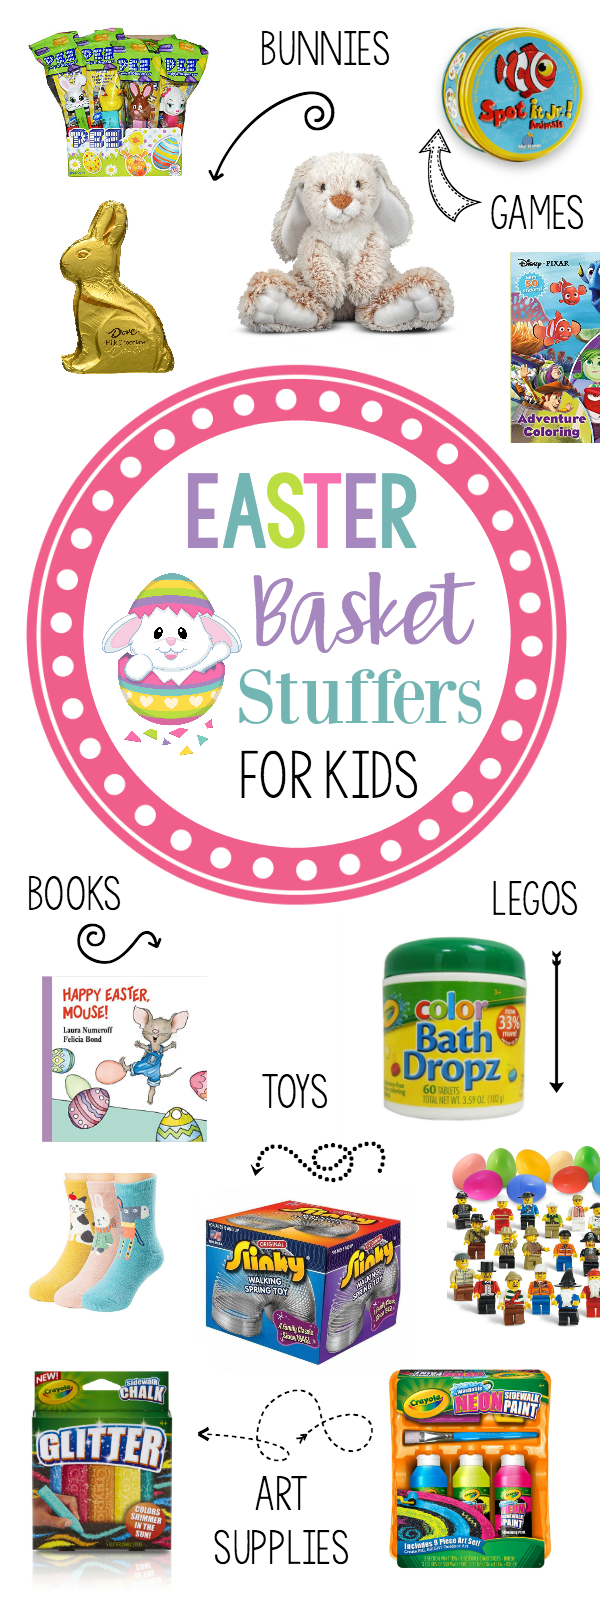 Easter basket stuffers ideas for kids under 10 easter baskets cute and fun easter basket stuffers for kids under 10 years old negle Images